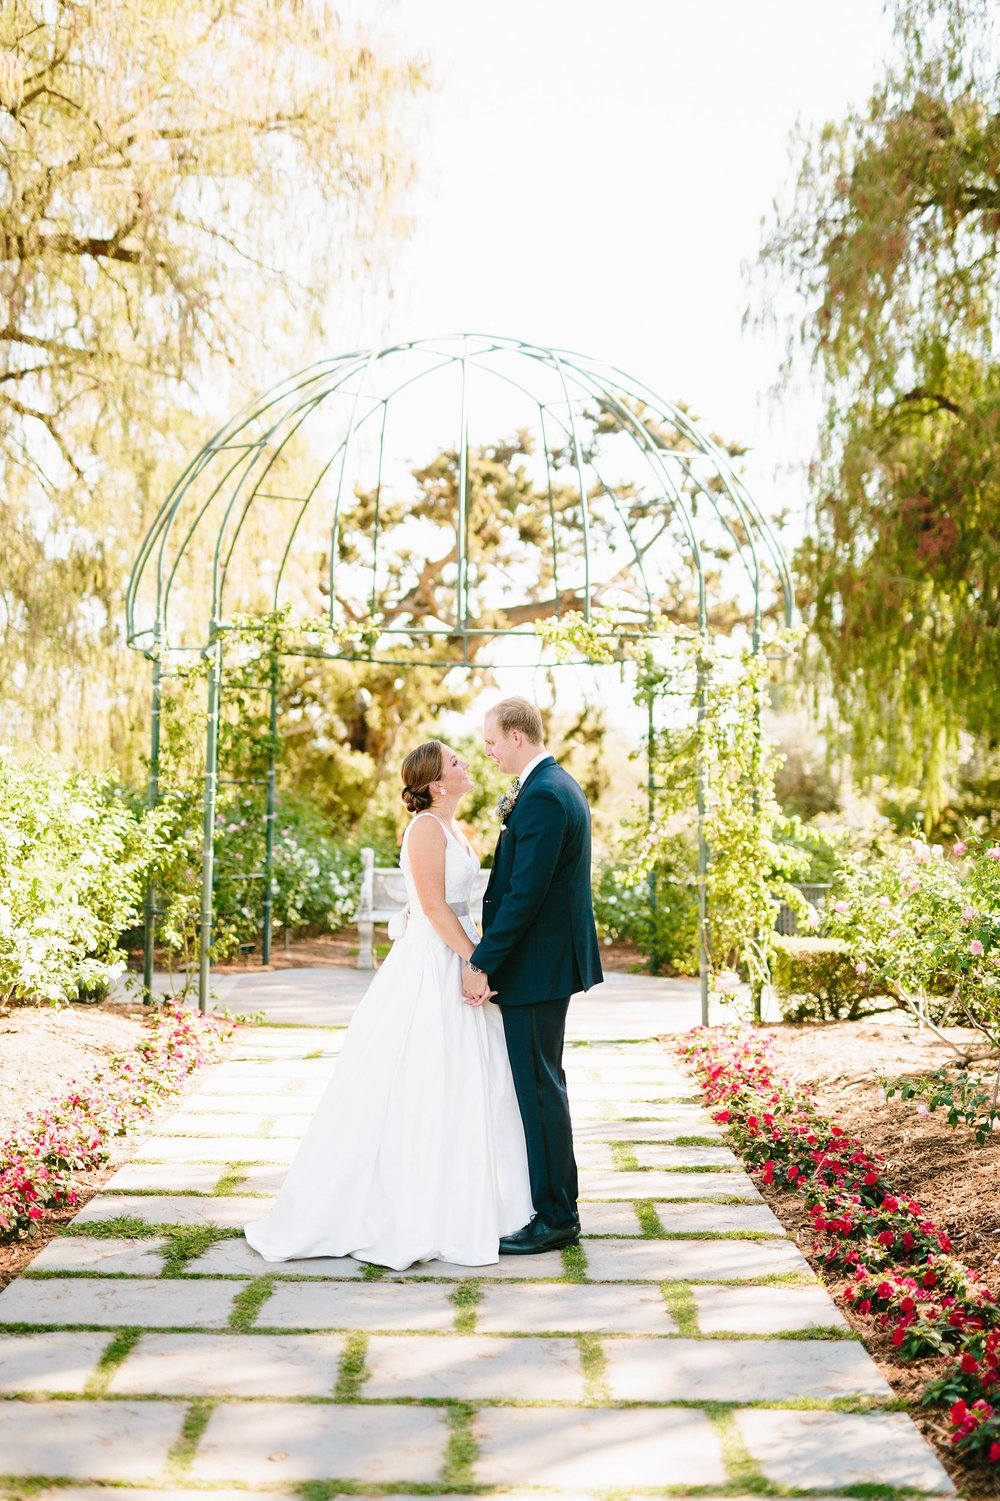 Bride and groom on a path in the Rose Garden at the Huntington Library and Gardens.